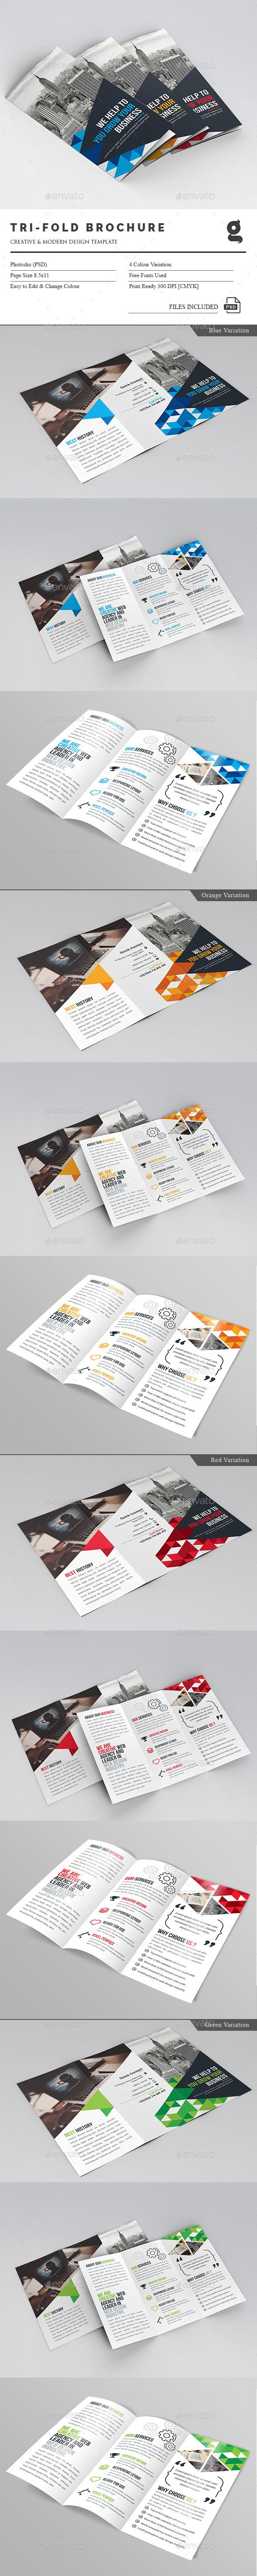 Business Tri-Fold Brochure Template PSD. Download here: http://graphicriver.net/item/business-trifold-brochure/16718510?ref=ksioks